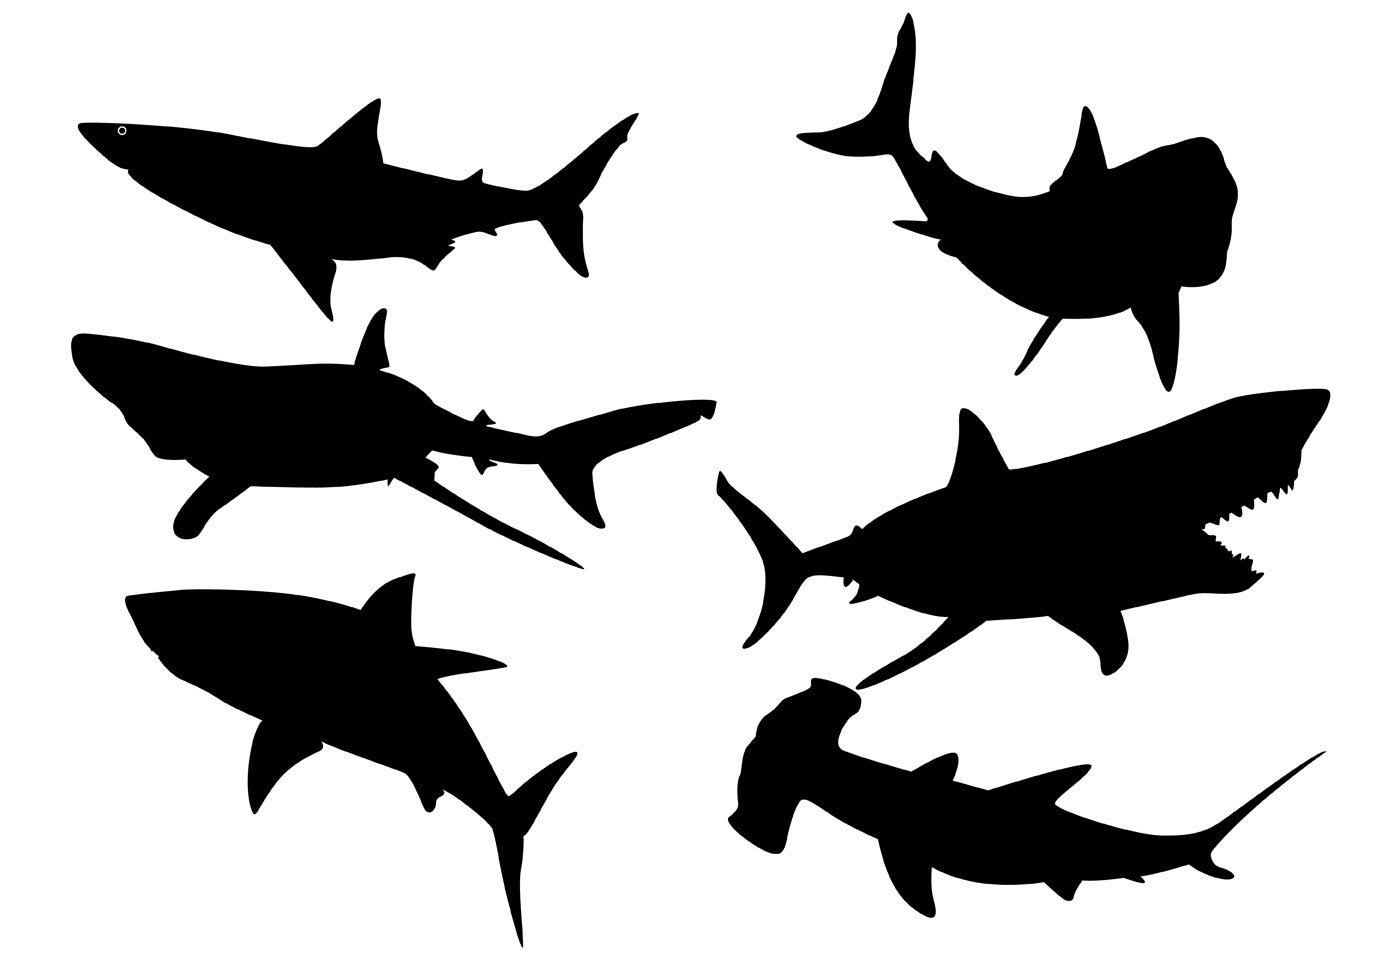 shark silouette great white shark silhouette graphic by idrawsilhouettes silouette shark